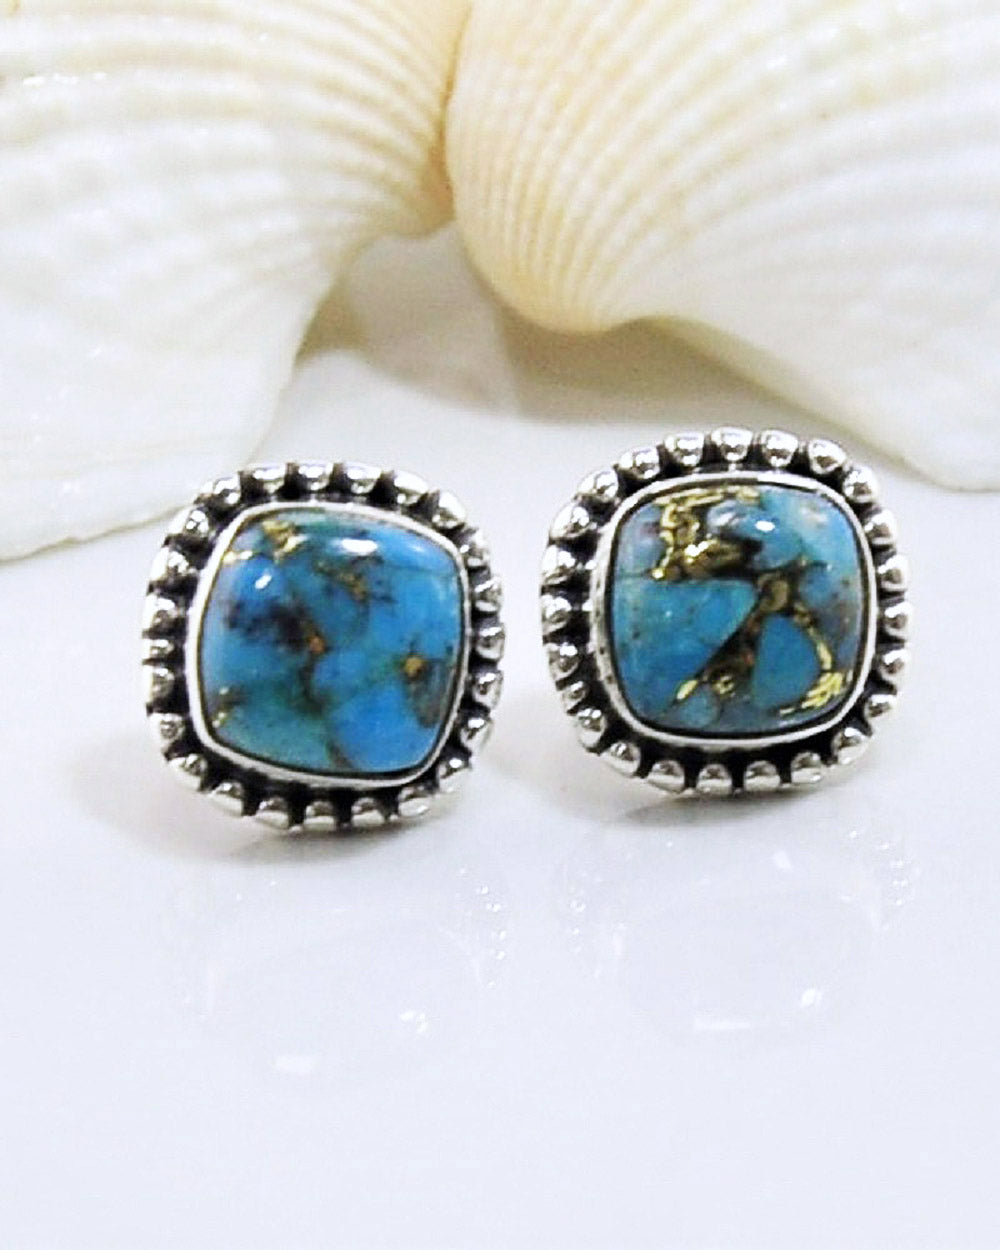 Blue Copper Turquoise Stud Earrings in 925 Sterling Silver